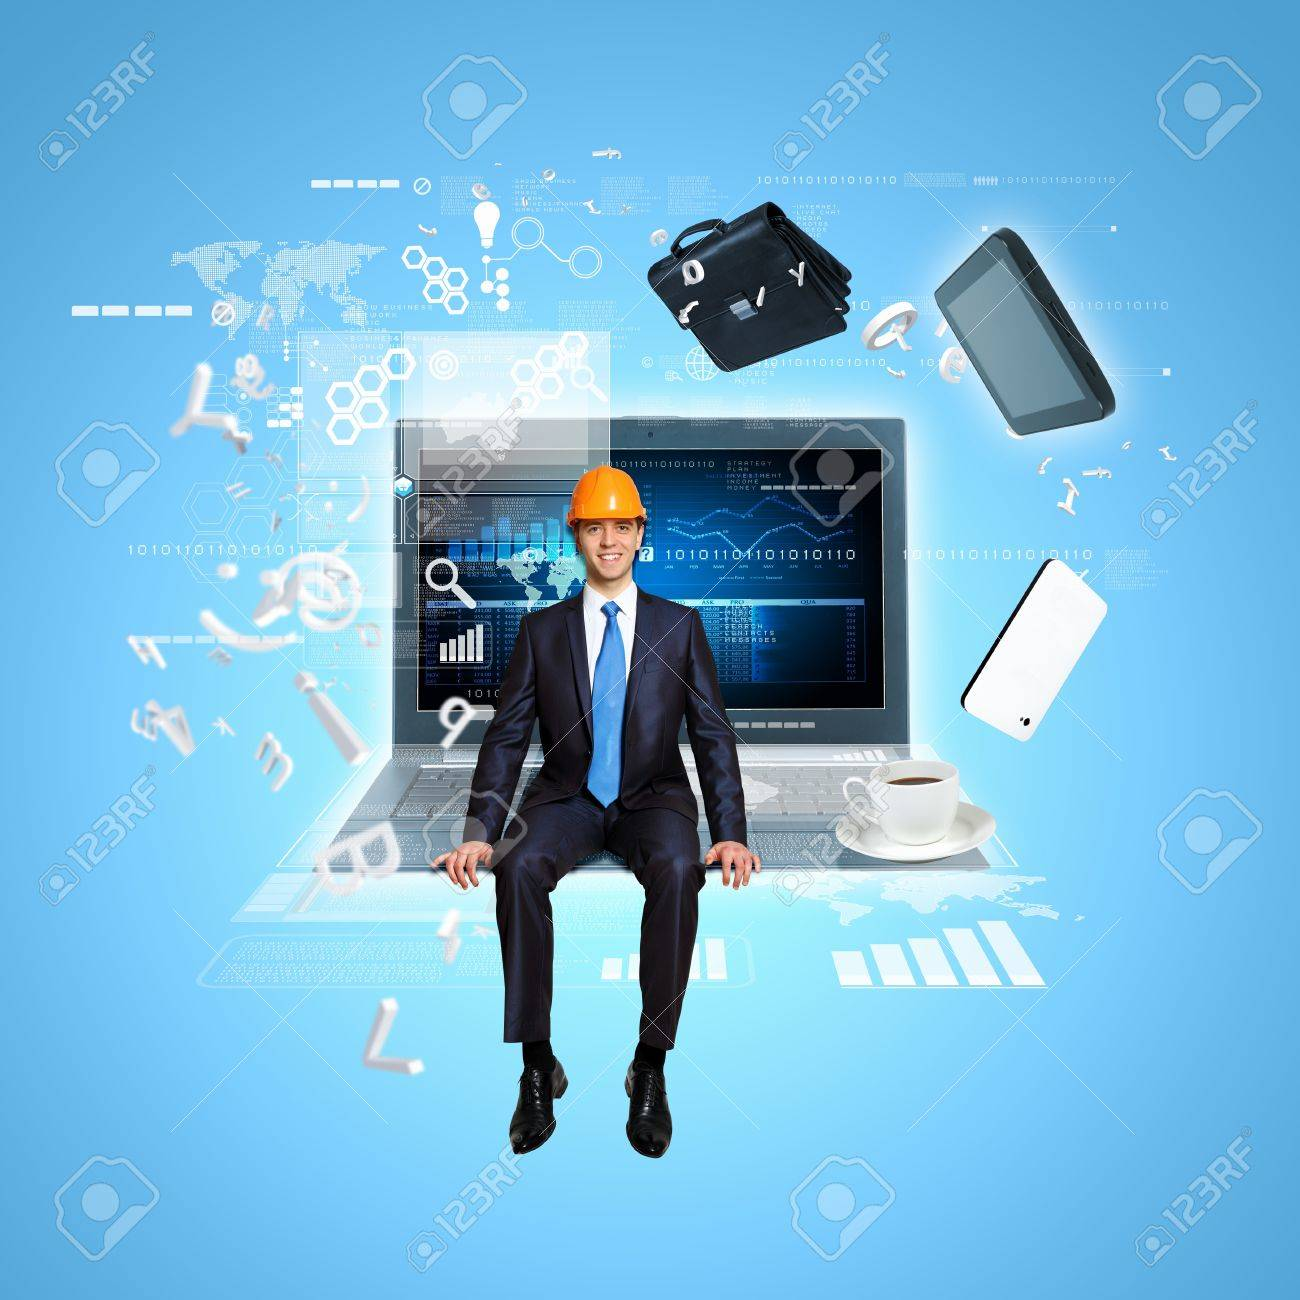 Modern technology illustration with computers and business person Stock Illustration - 16895745